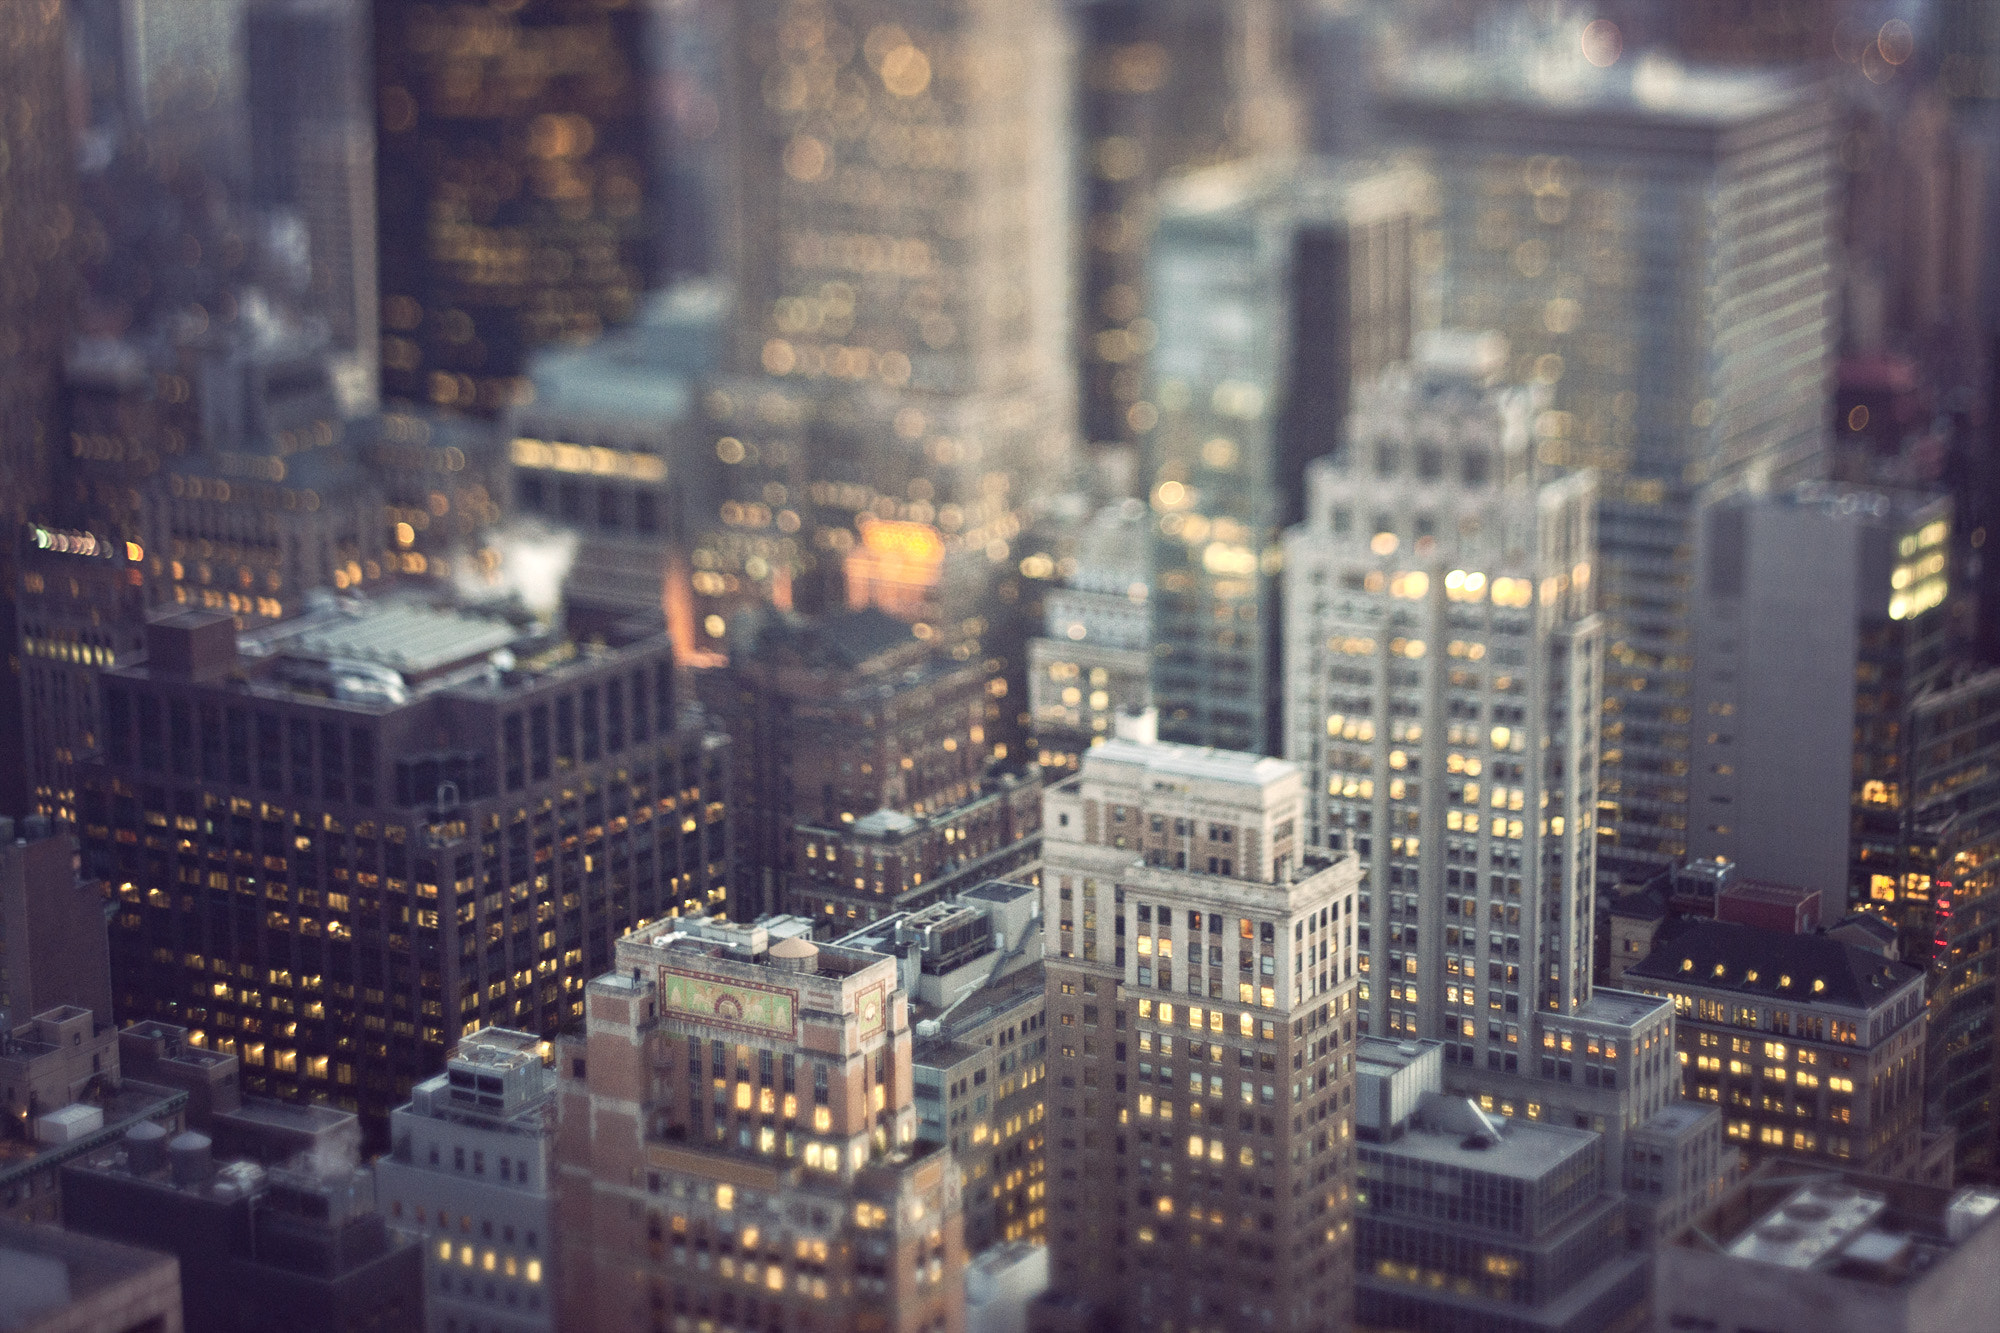 Photograph Toy buildings by Raphaël Dupertuis on 500px